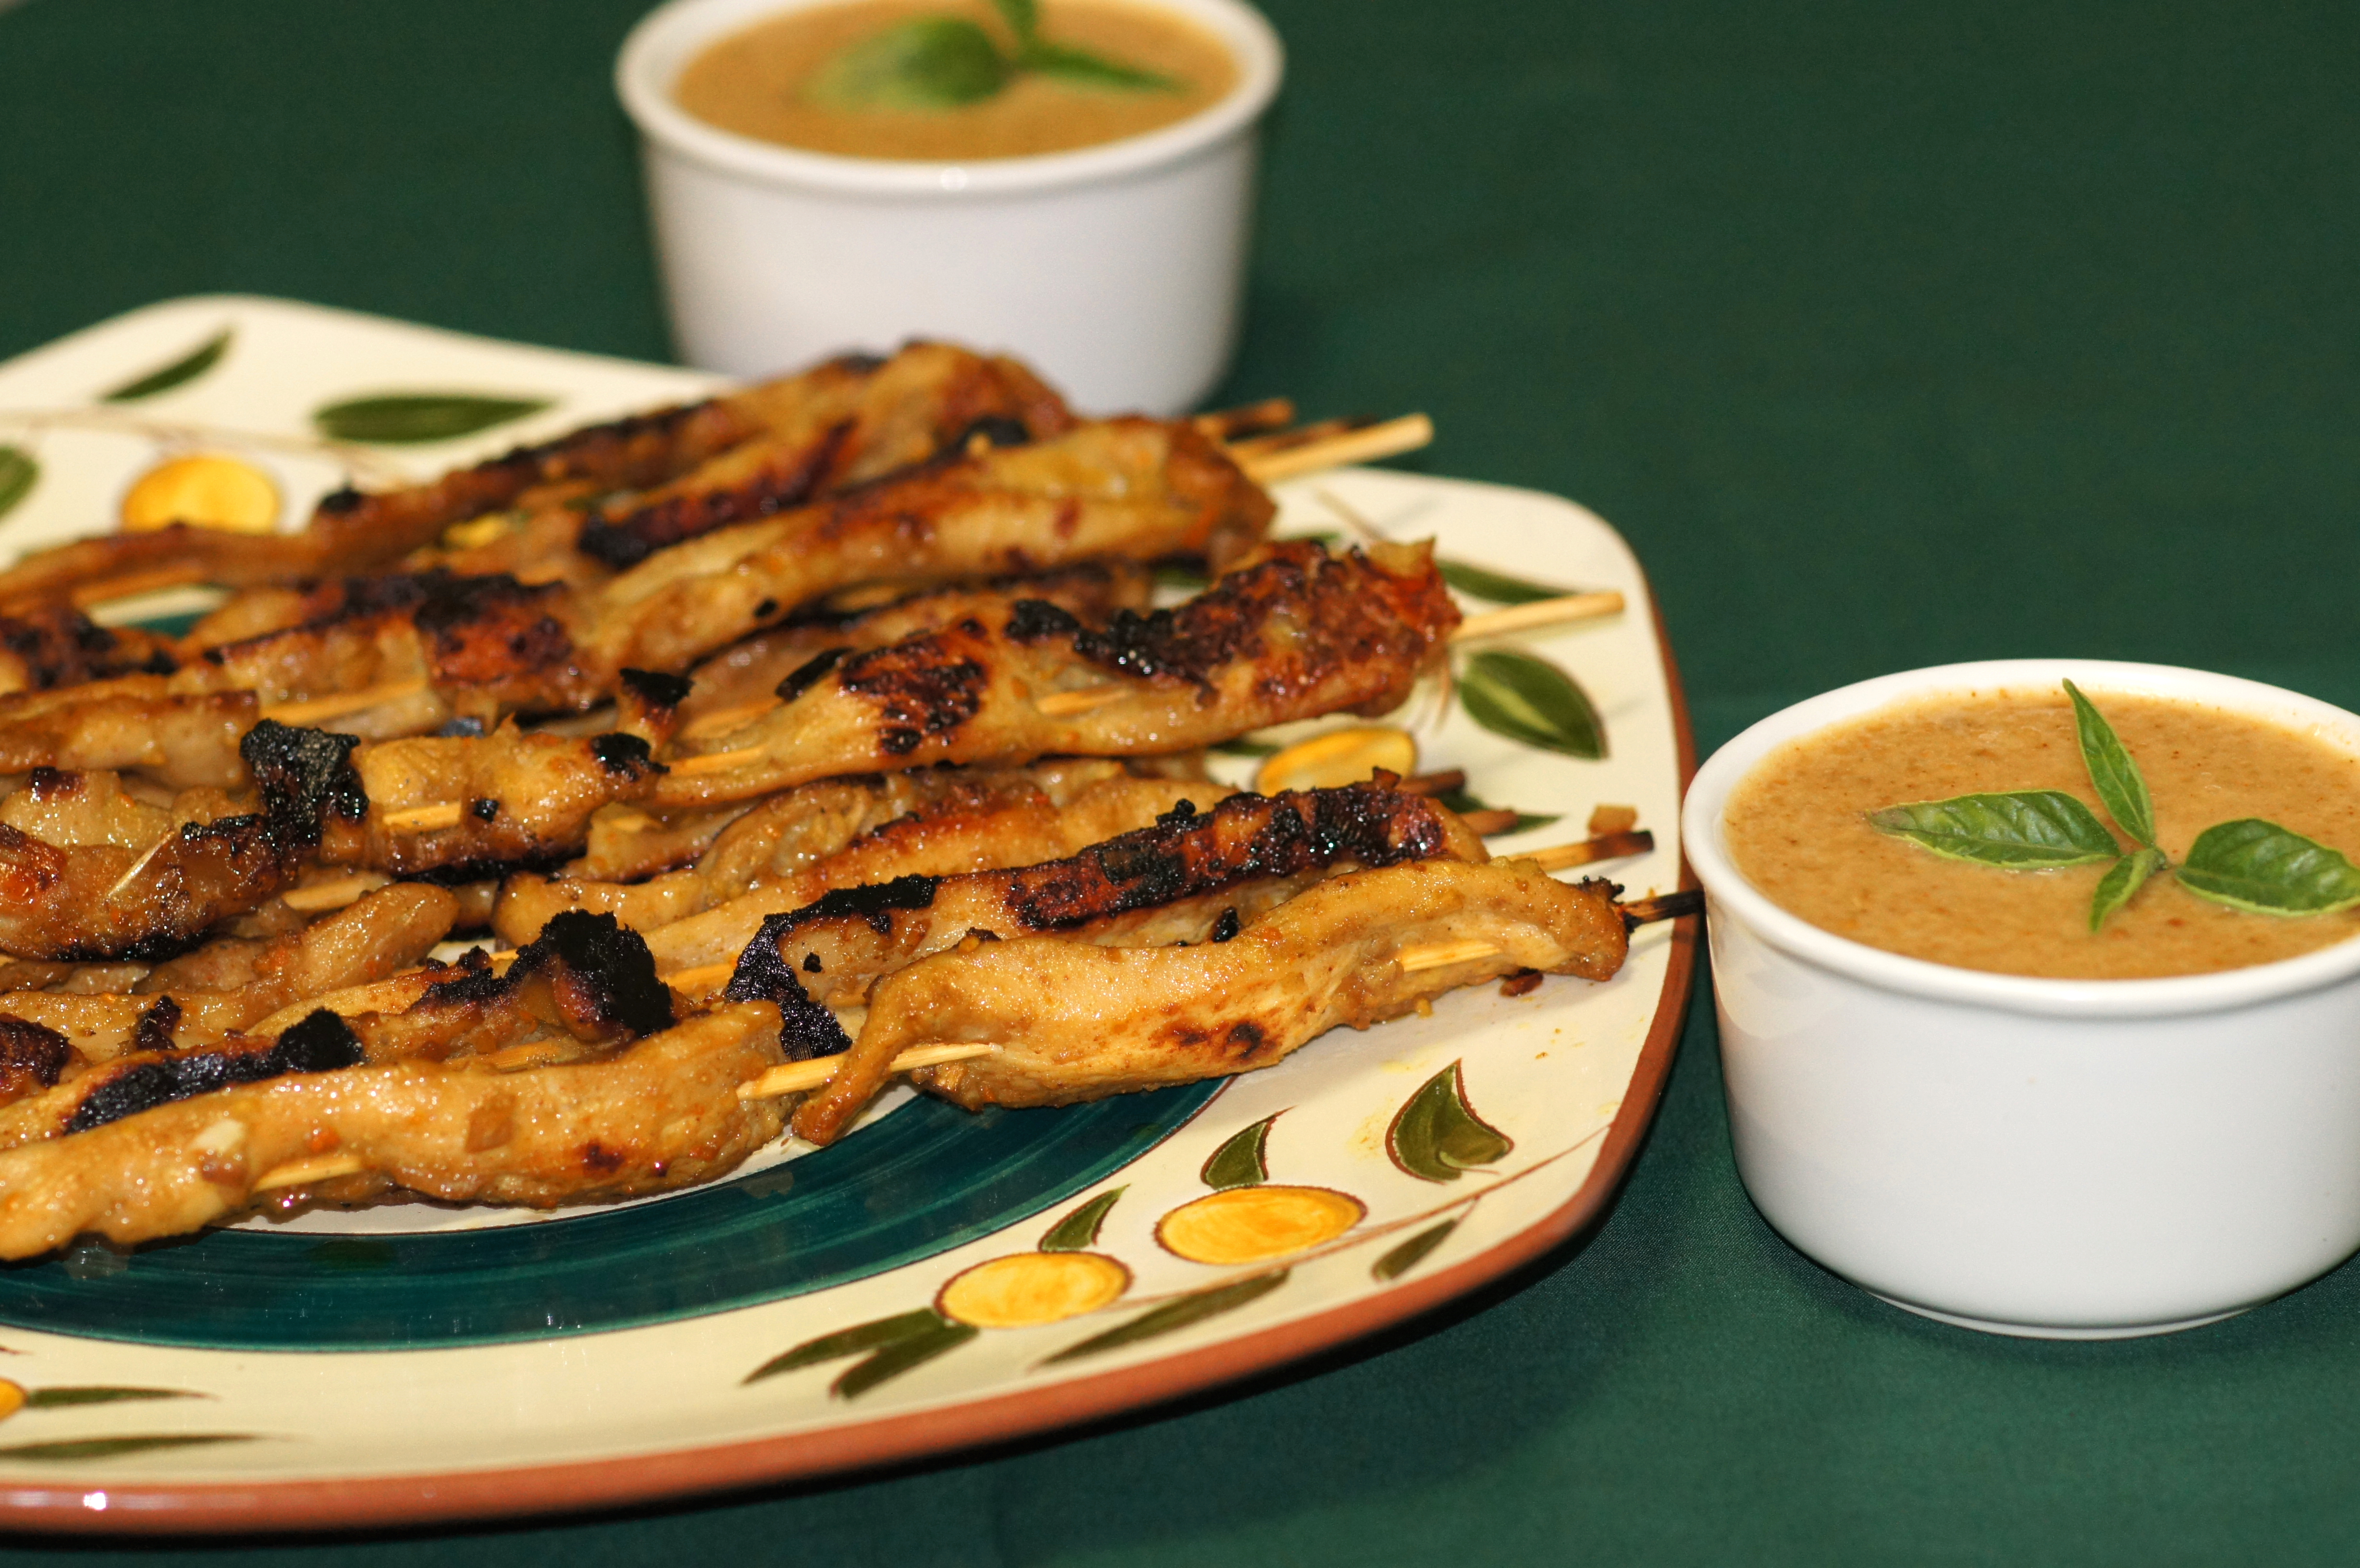 Grilled Thai Chicken Satay with Homemade Peanut Sauce